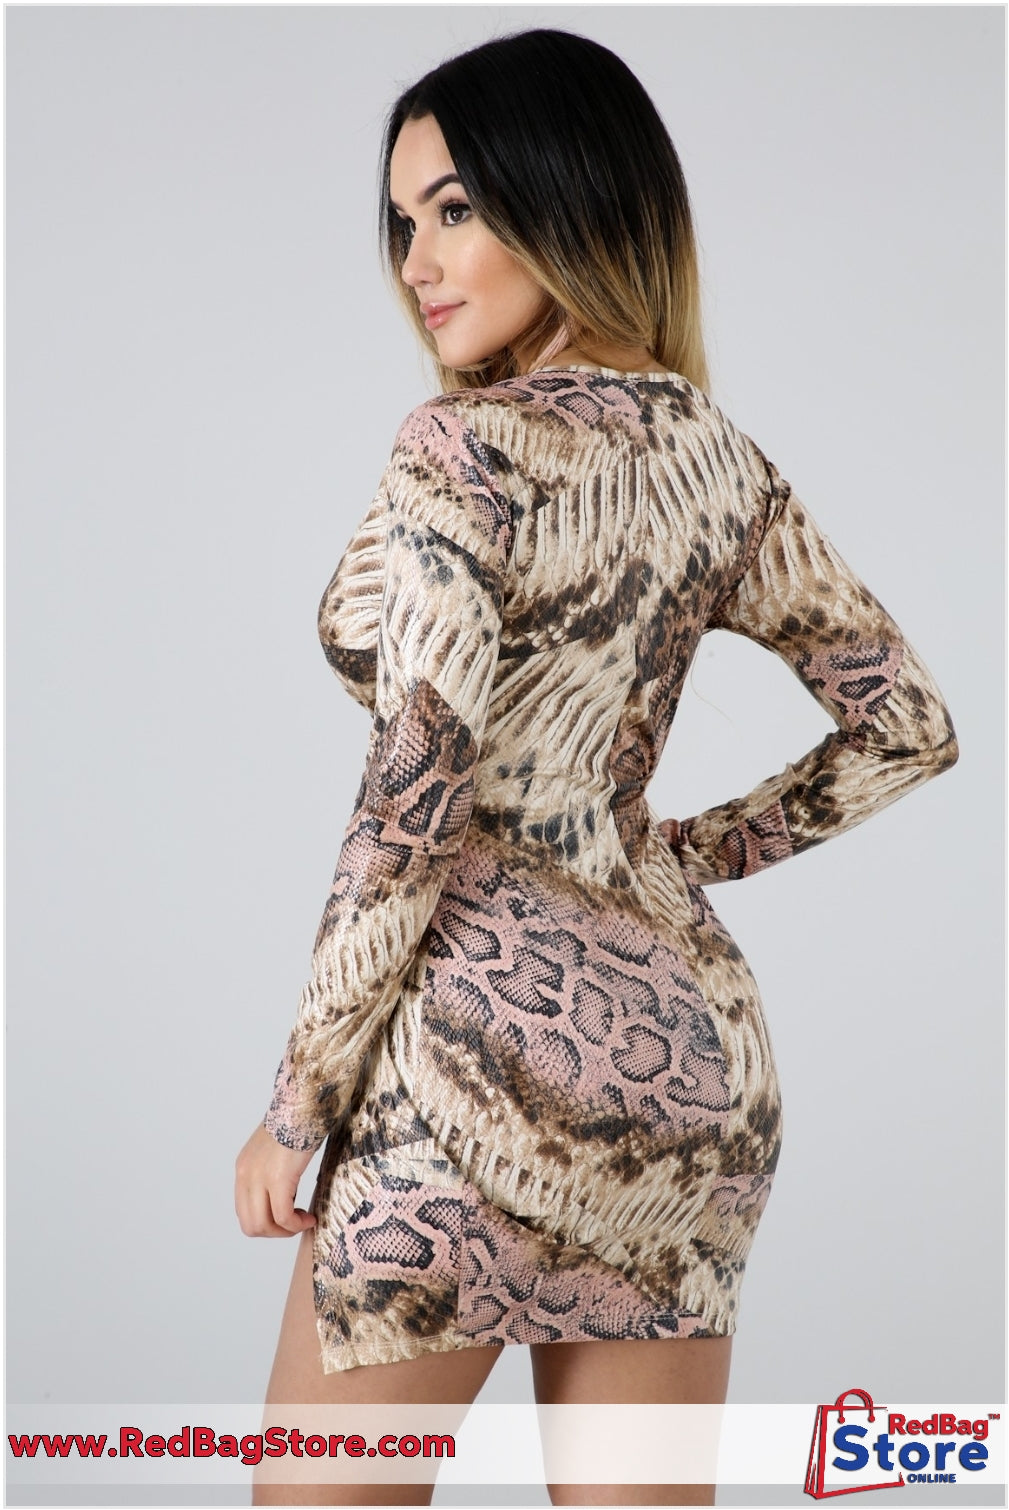 Bite Shine Dress Animal Print